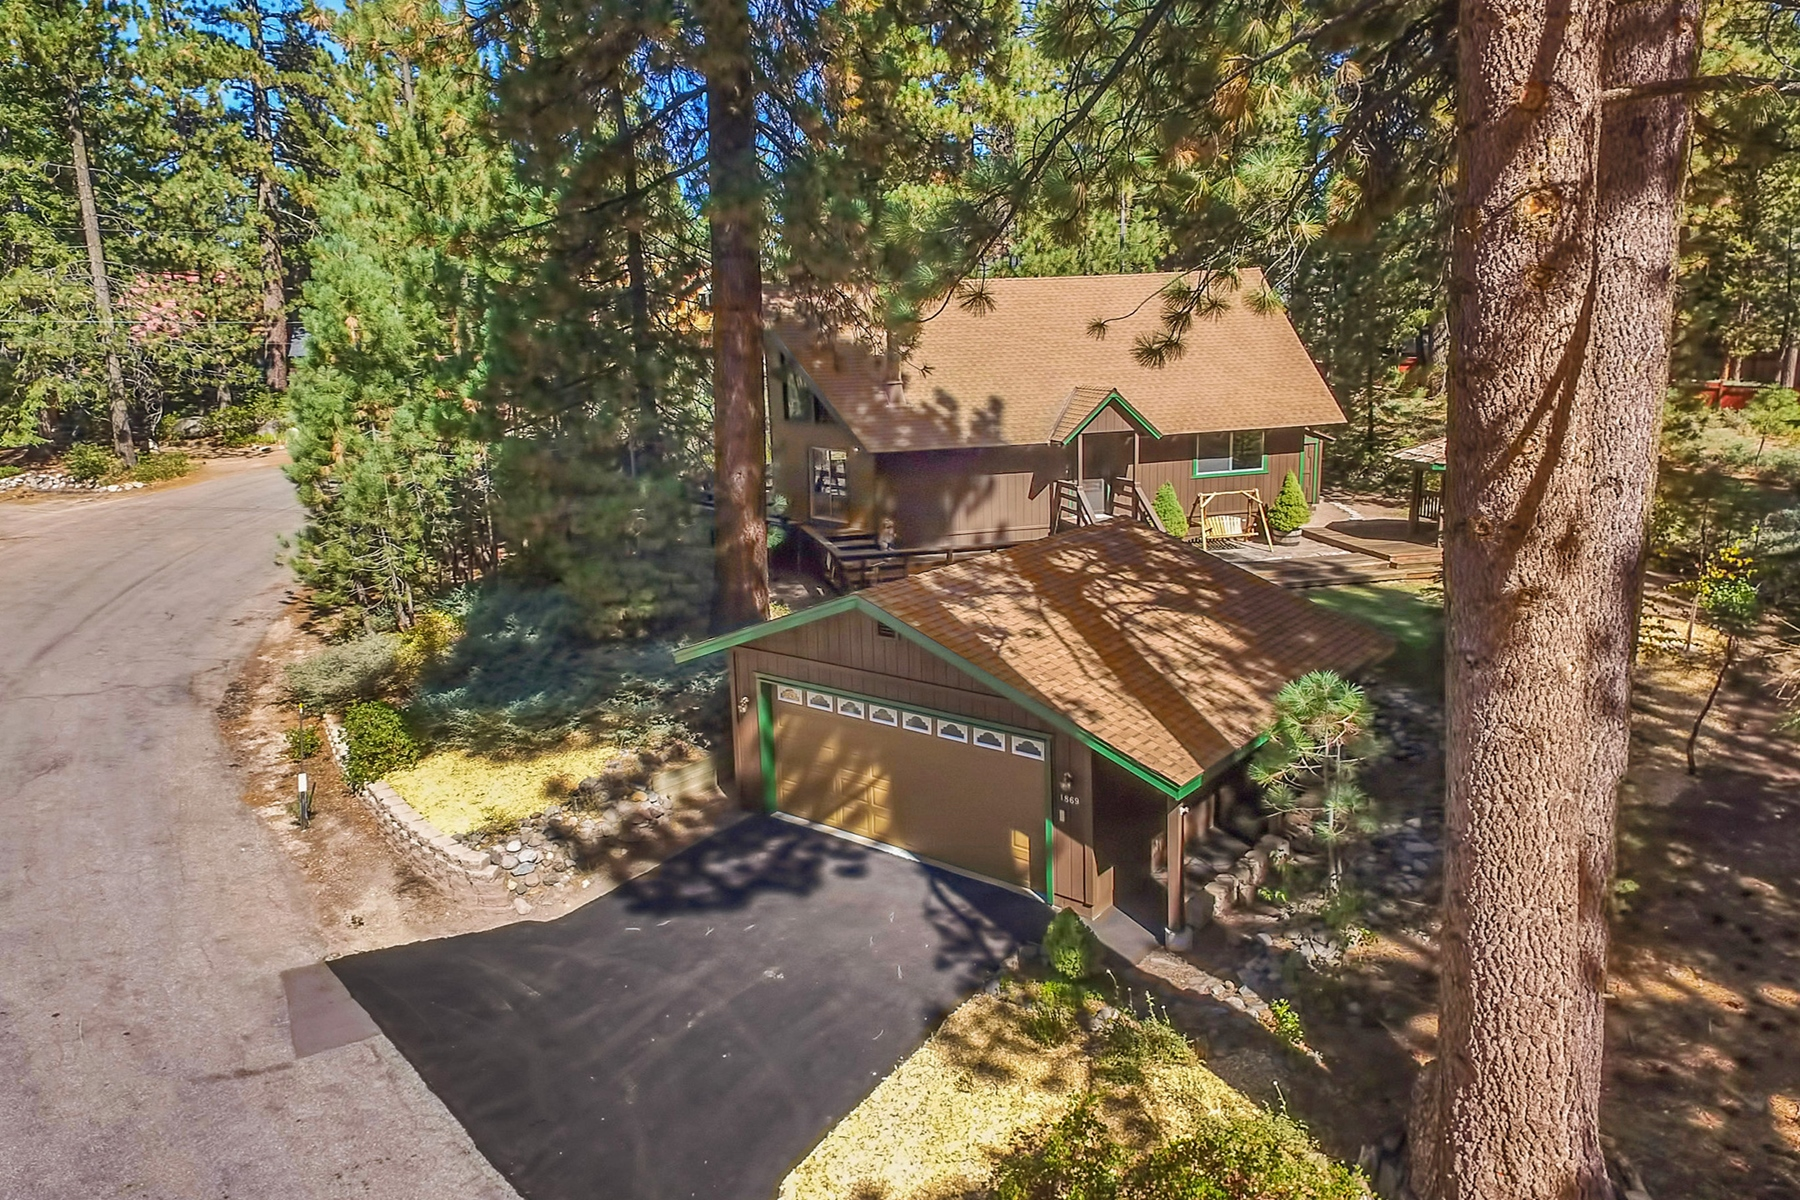 Property for Active at 1869 Haidas Circle, South Lake Tahoe, CA, 96150 1869 Haidas Circle South Lake Tahoe, California 96150 United States